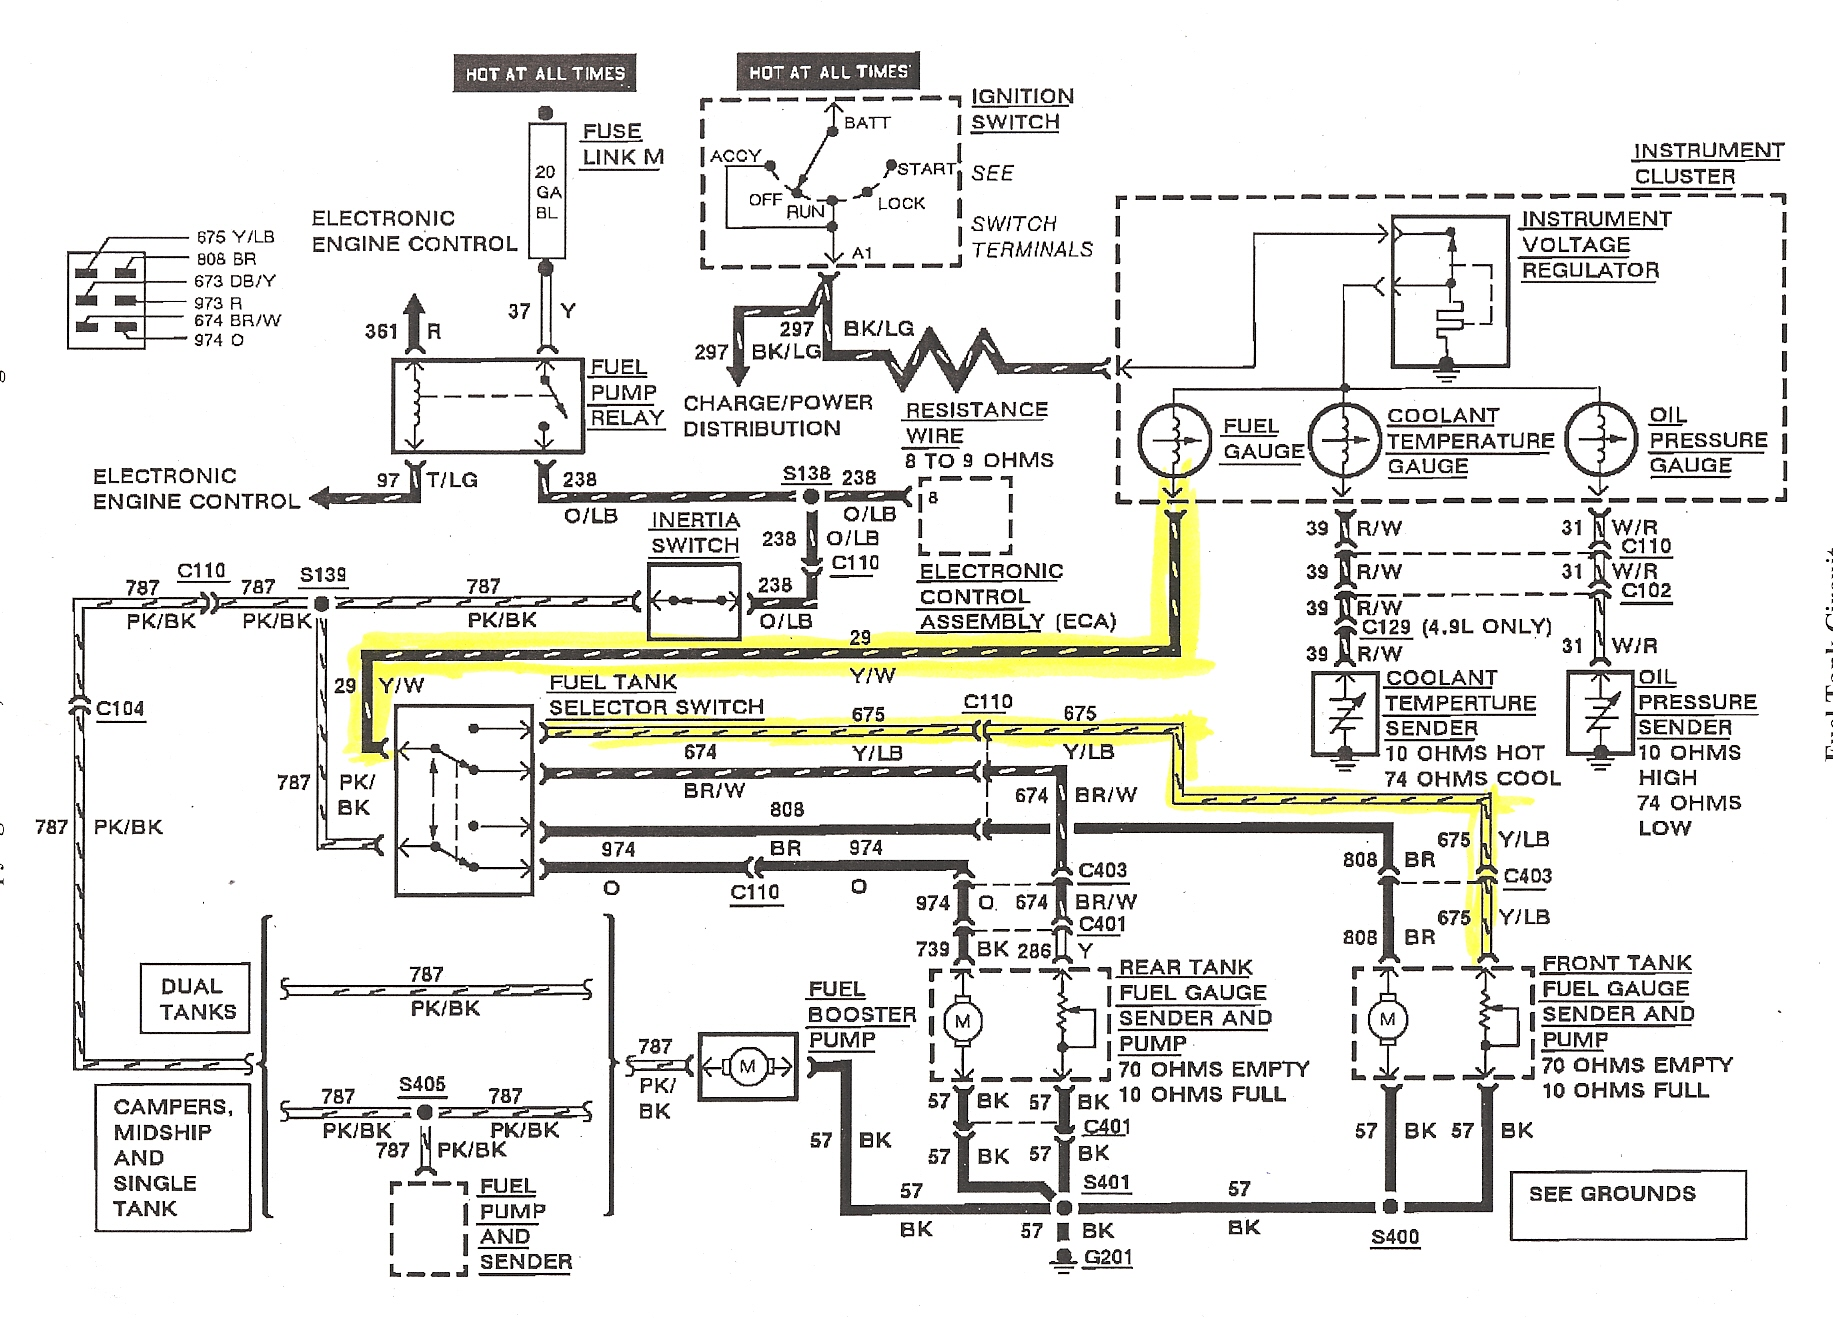 sending unit wiring diagram wiring diagram database88 ford mustang fuel sender  wiring wiring diagram gp temperature